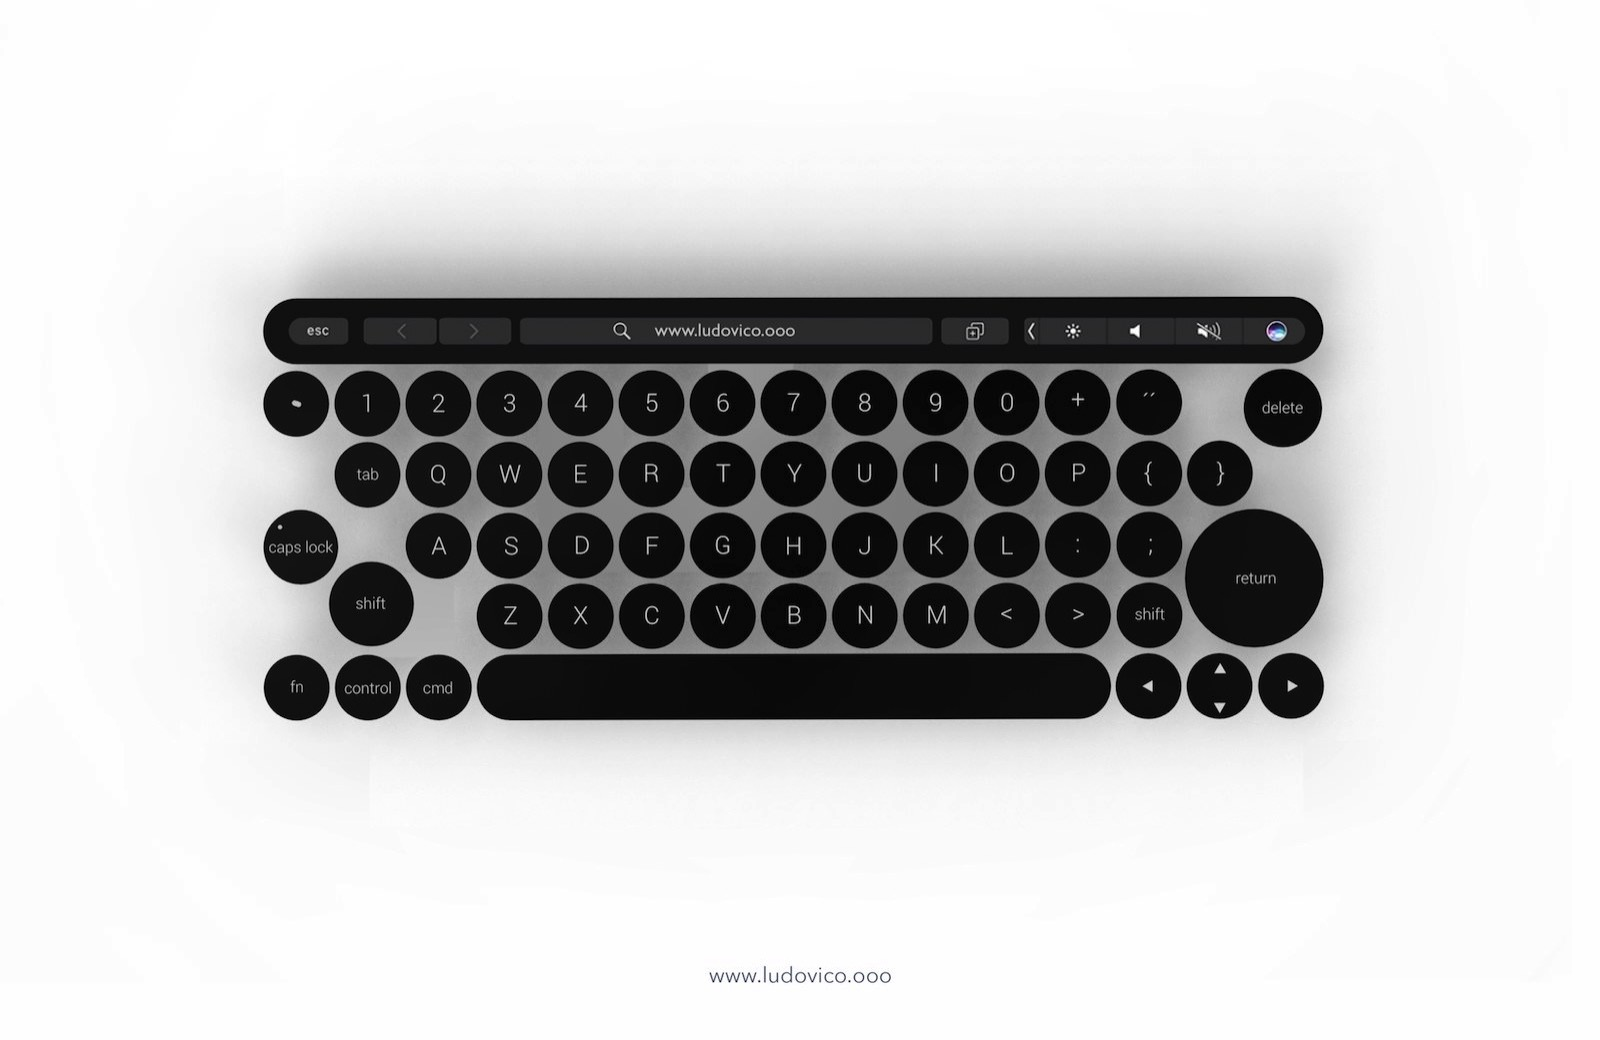 MacBook X Concept Image Keyboard